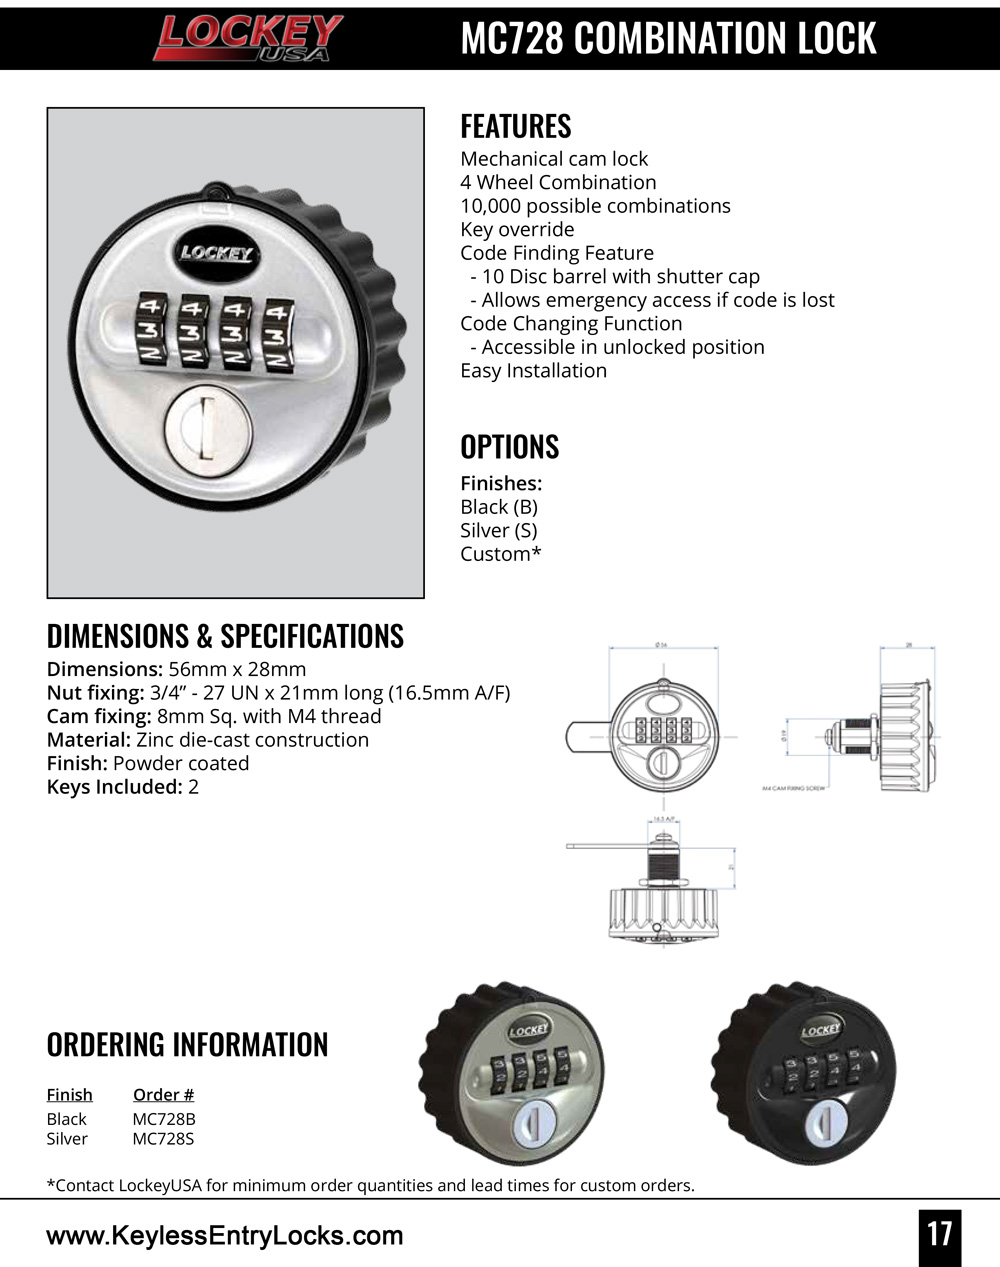 Lockey MC728 Mechanical Combination Lock